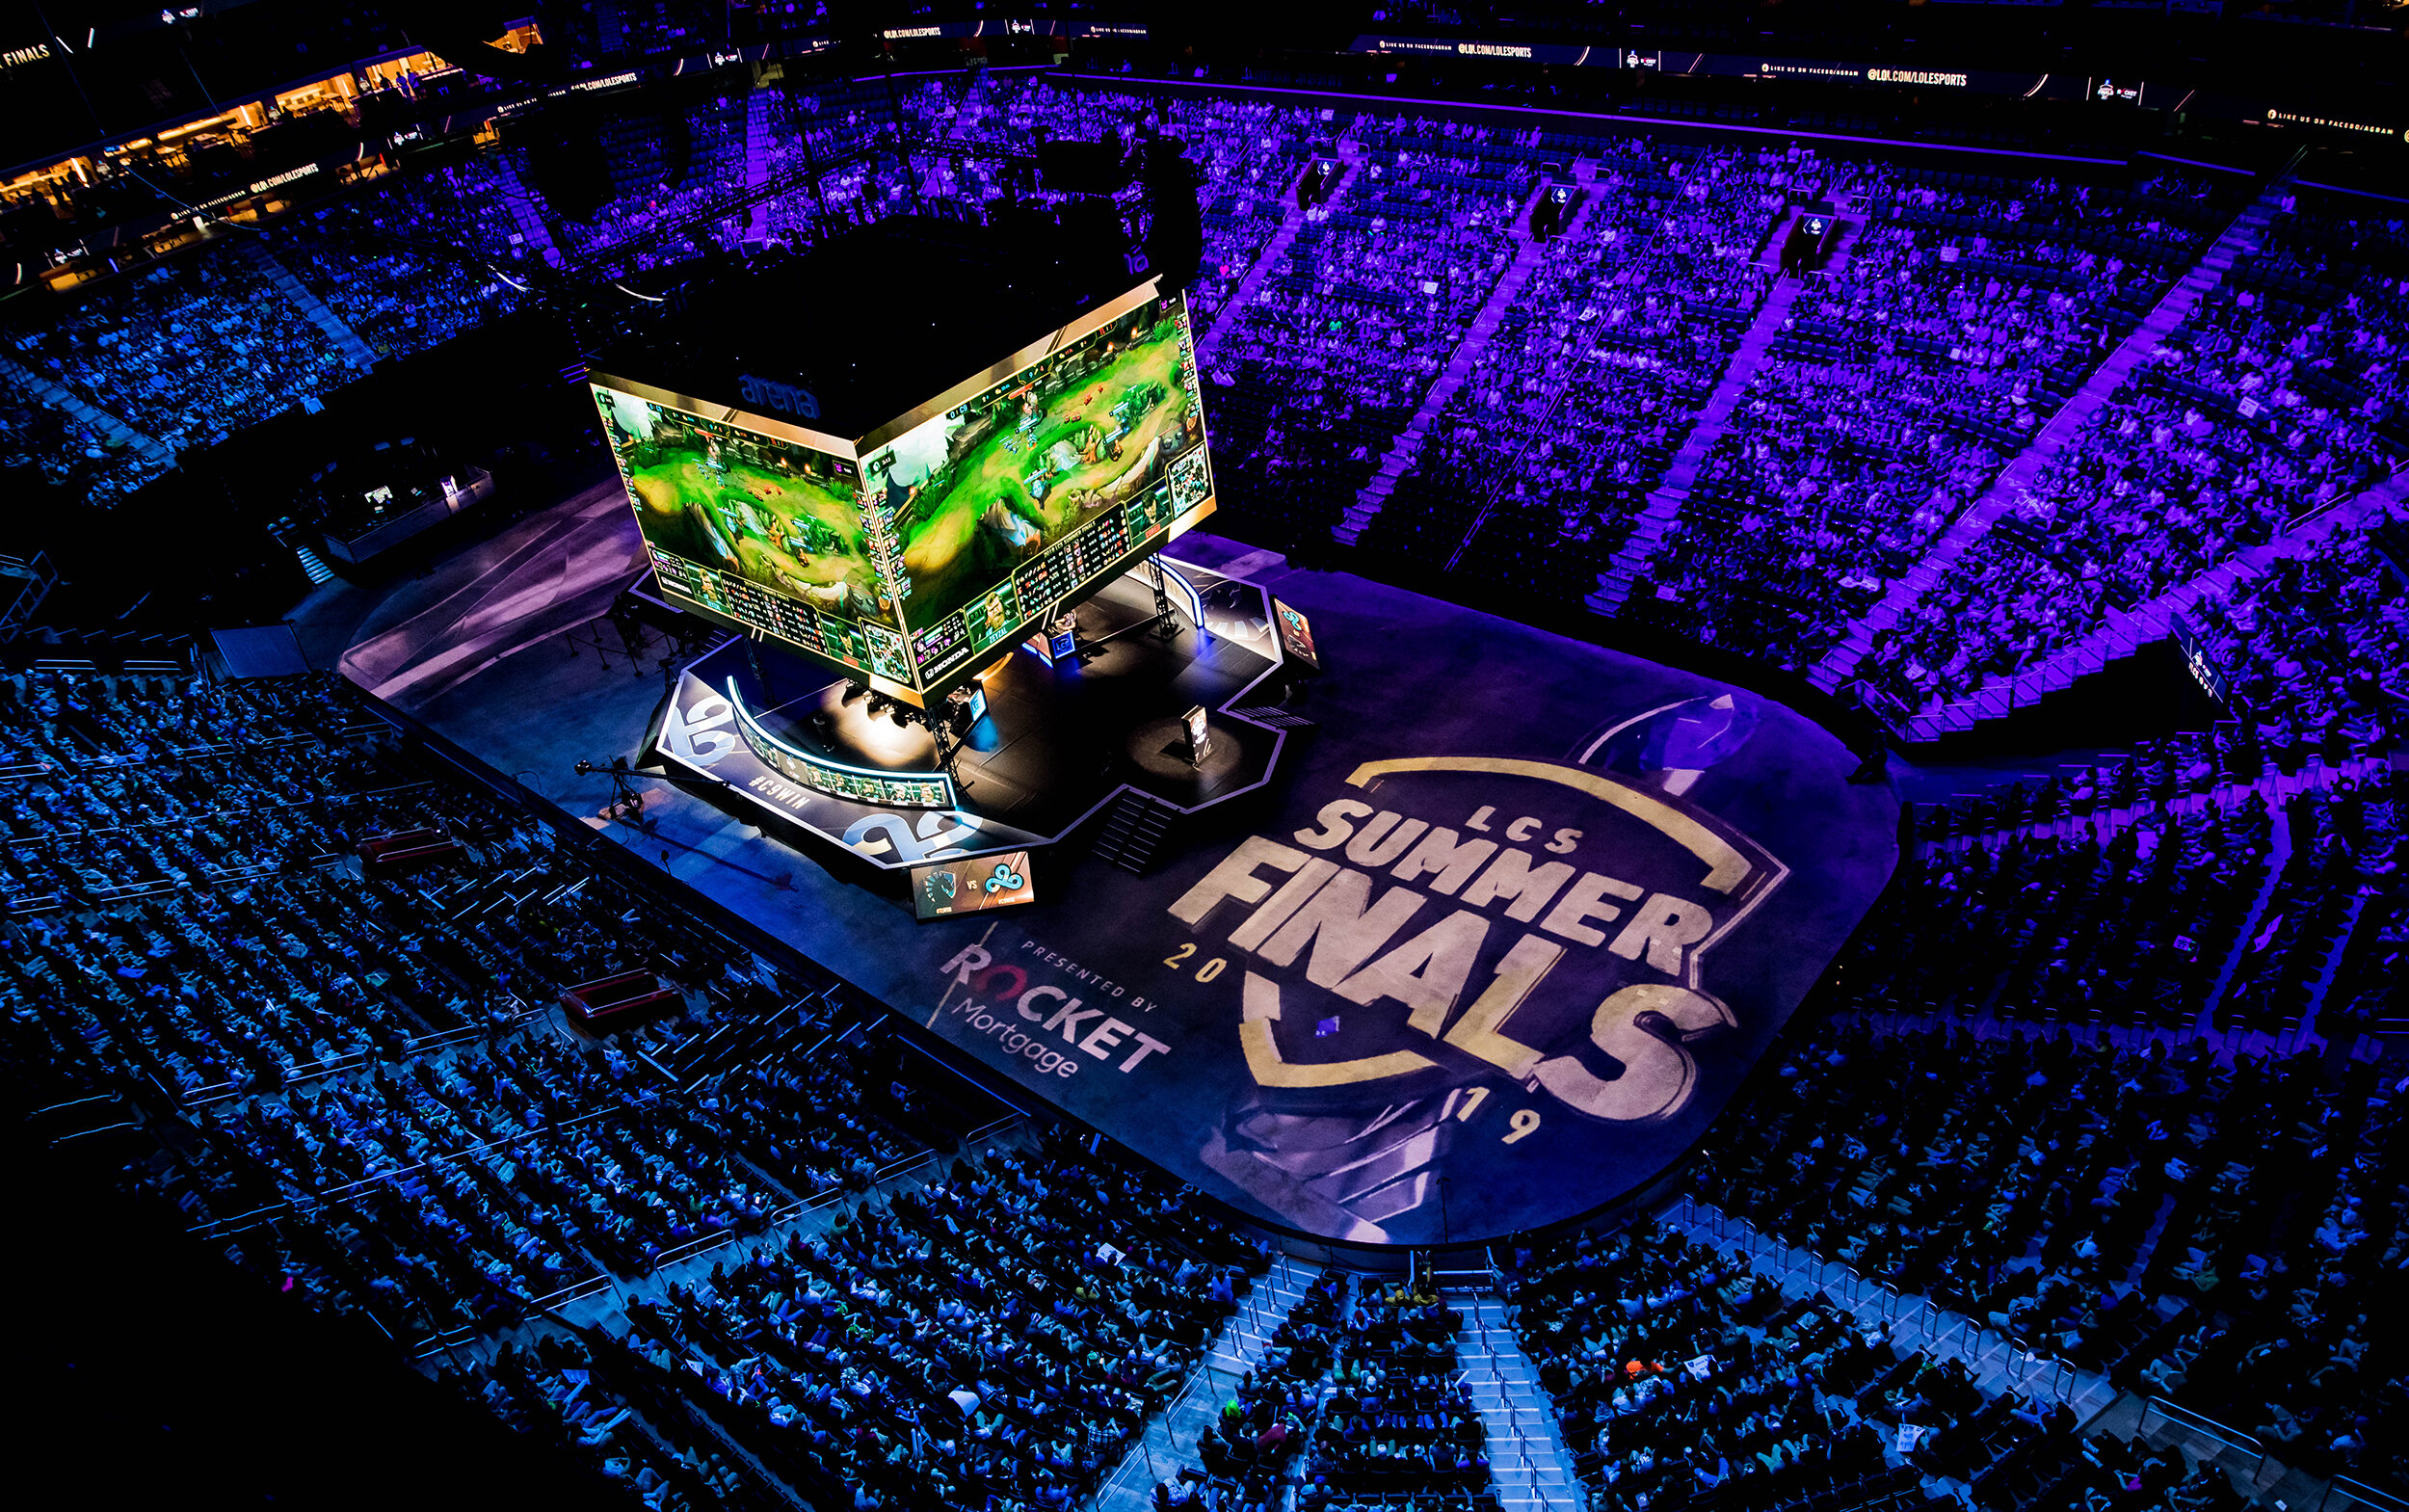 2019 LCS Summer Finals   DETROIT, MI - AUGUST 25: Final match Cloud9 vs Team Liquid onstage at League of Legends Championship Series (LCS) Summer Finals presented by Rocket Mortgage at Little Caesars Arena on August 25, 2019 in Detroit, Michigan. ( Photo by Kyle Miller/ESPAT Media)